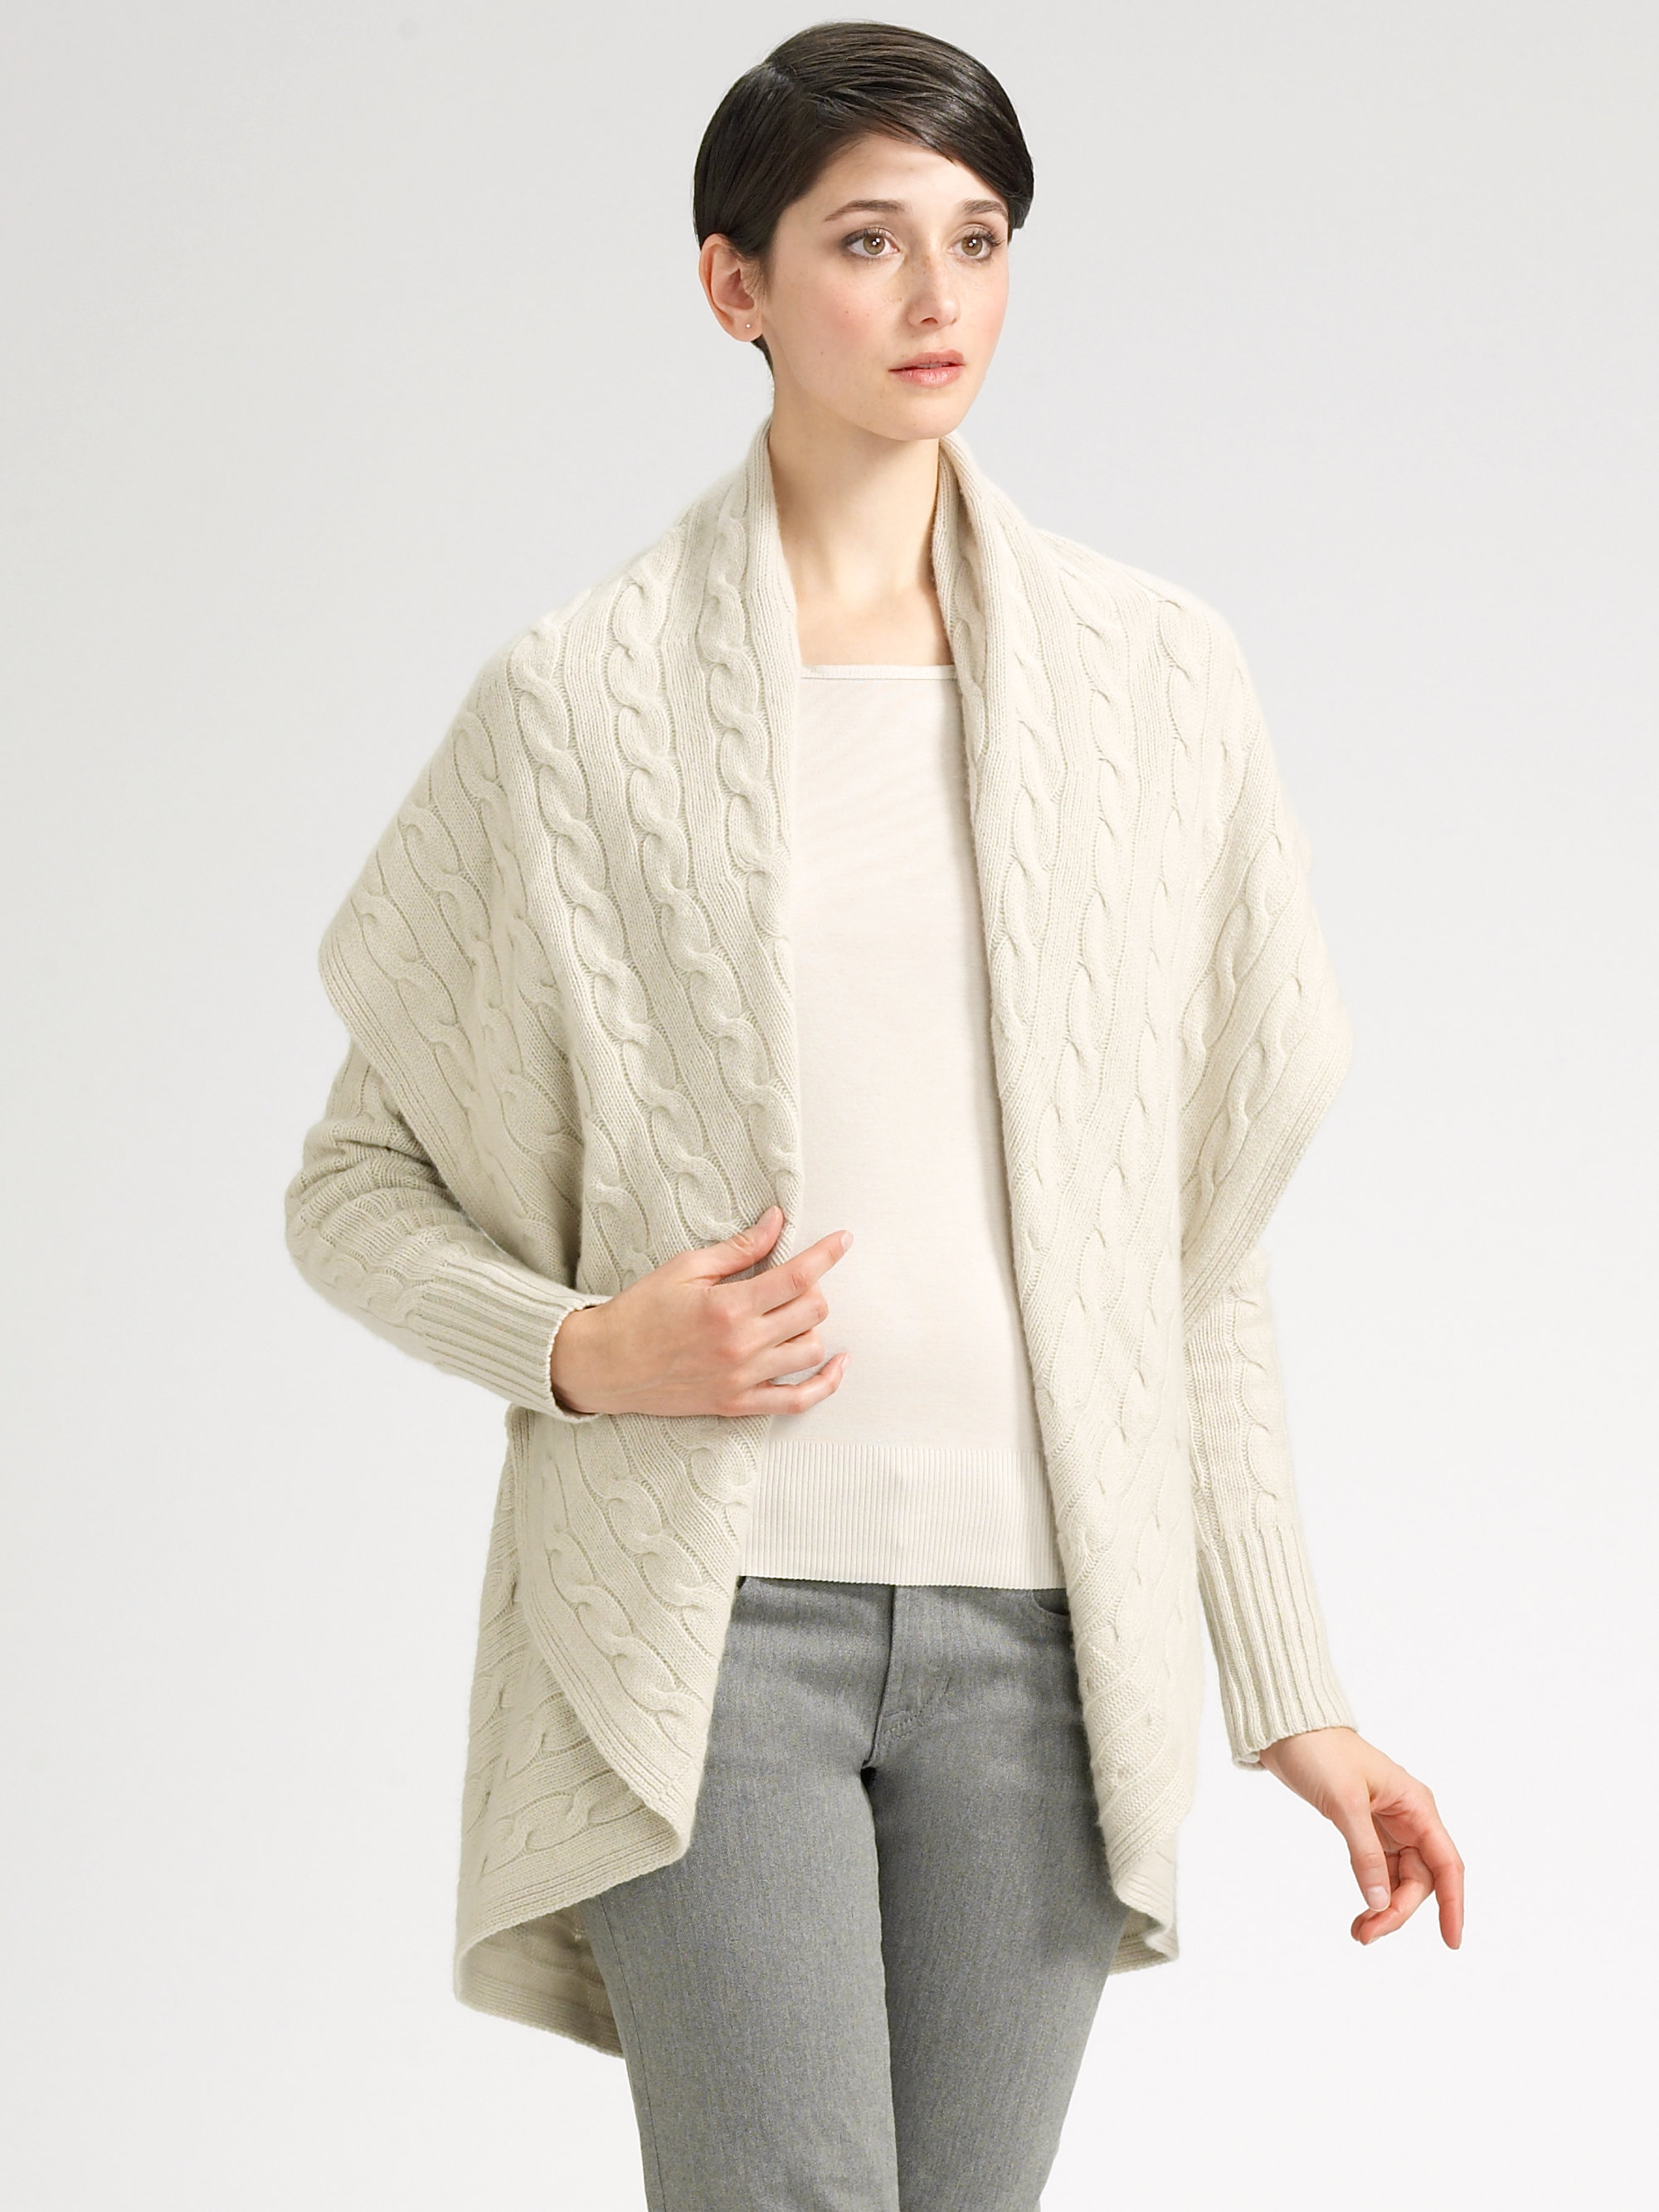 Ralph lauren black label Draped Cashmere Cardigan in White | Lyst